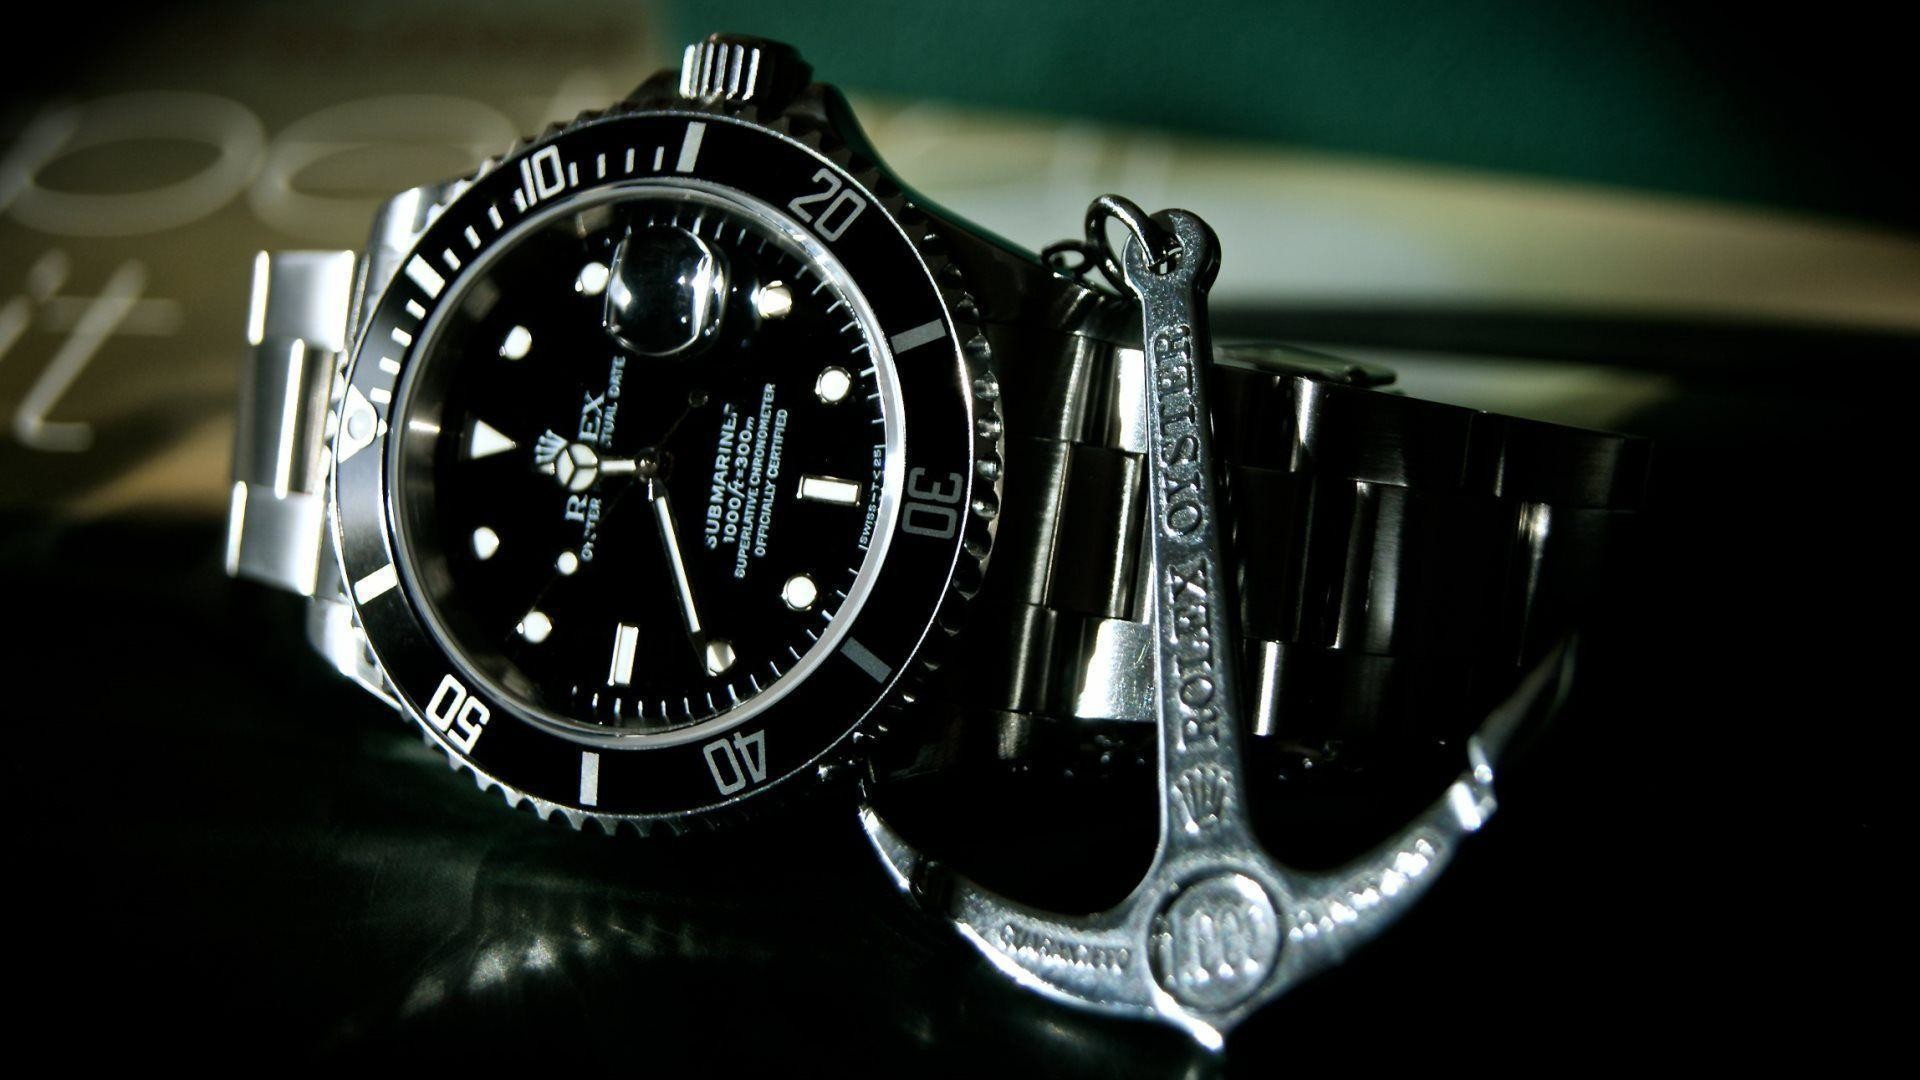 1920x1080 Tudor, Rolex, Breitling & Tag Heur Watches Wallpapers · 4K HD .